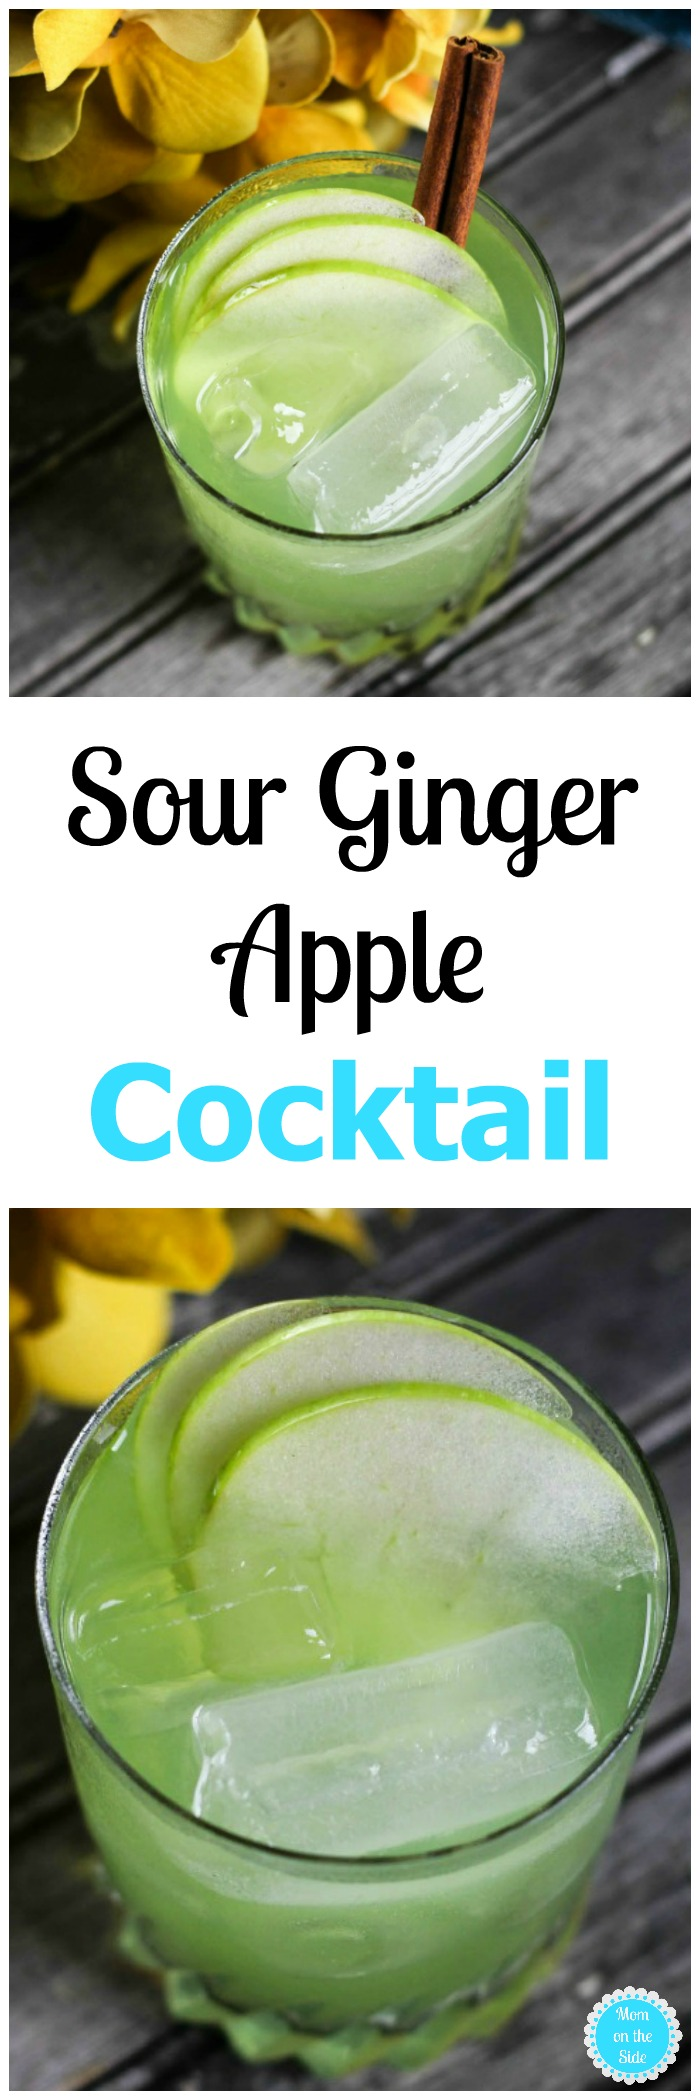 Sour Ginger Apple Cocktail Recipe